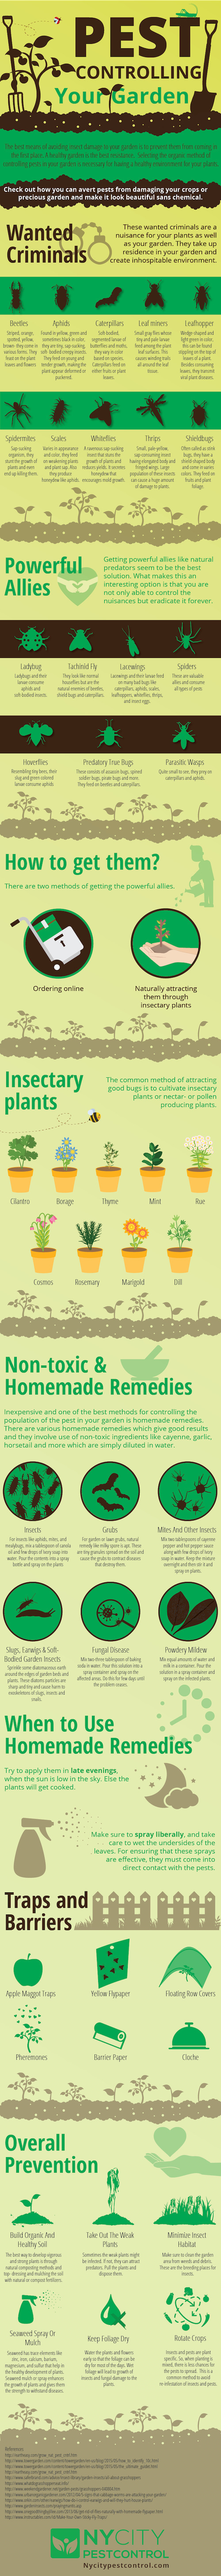 Info graphic Photo credit: http://nycitypestcontrol.com/diy-garden-pest-control-infographic/